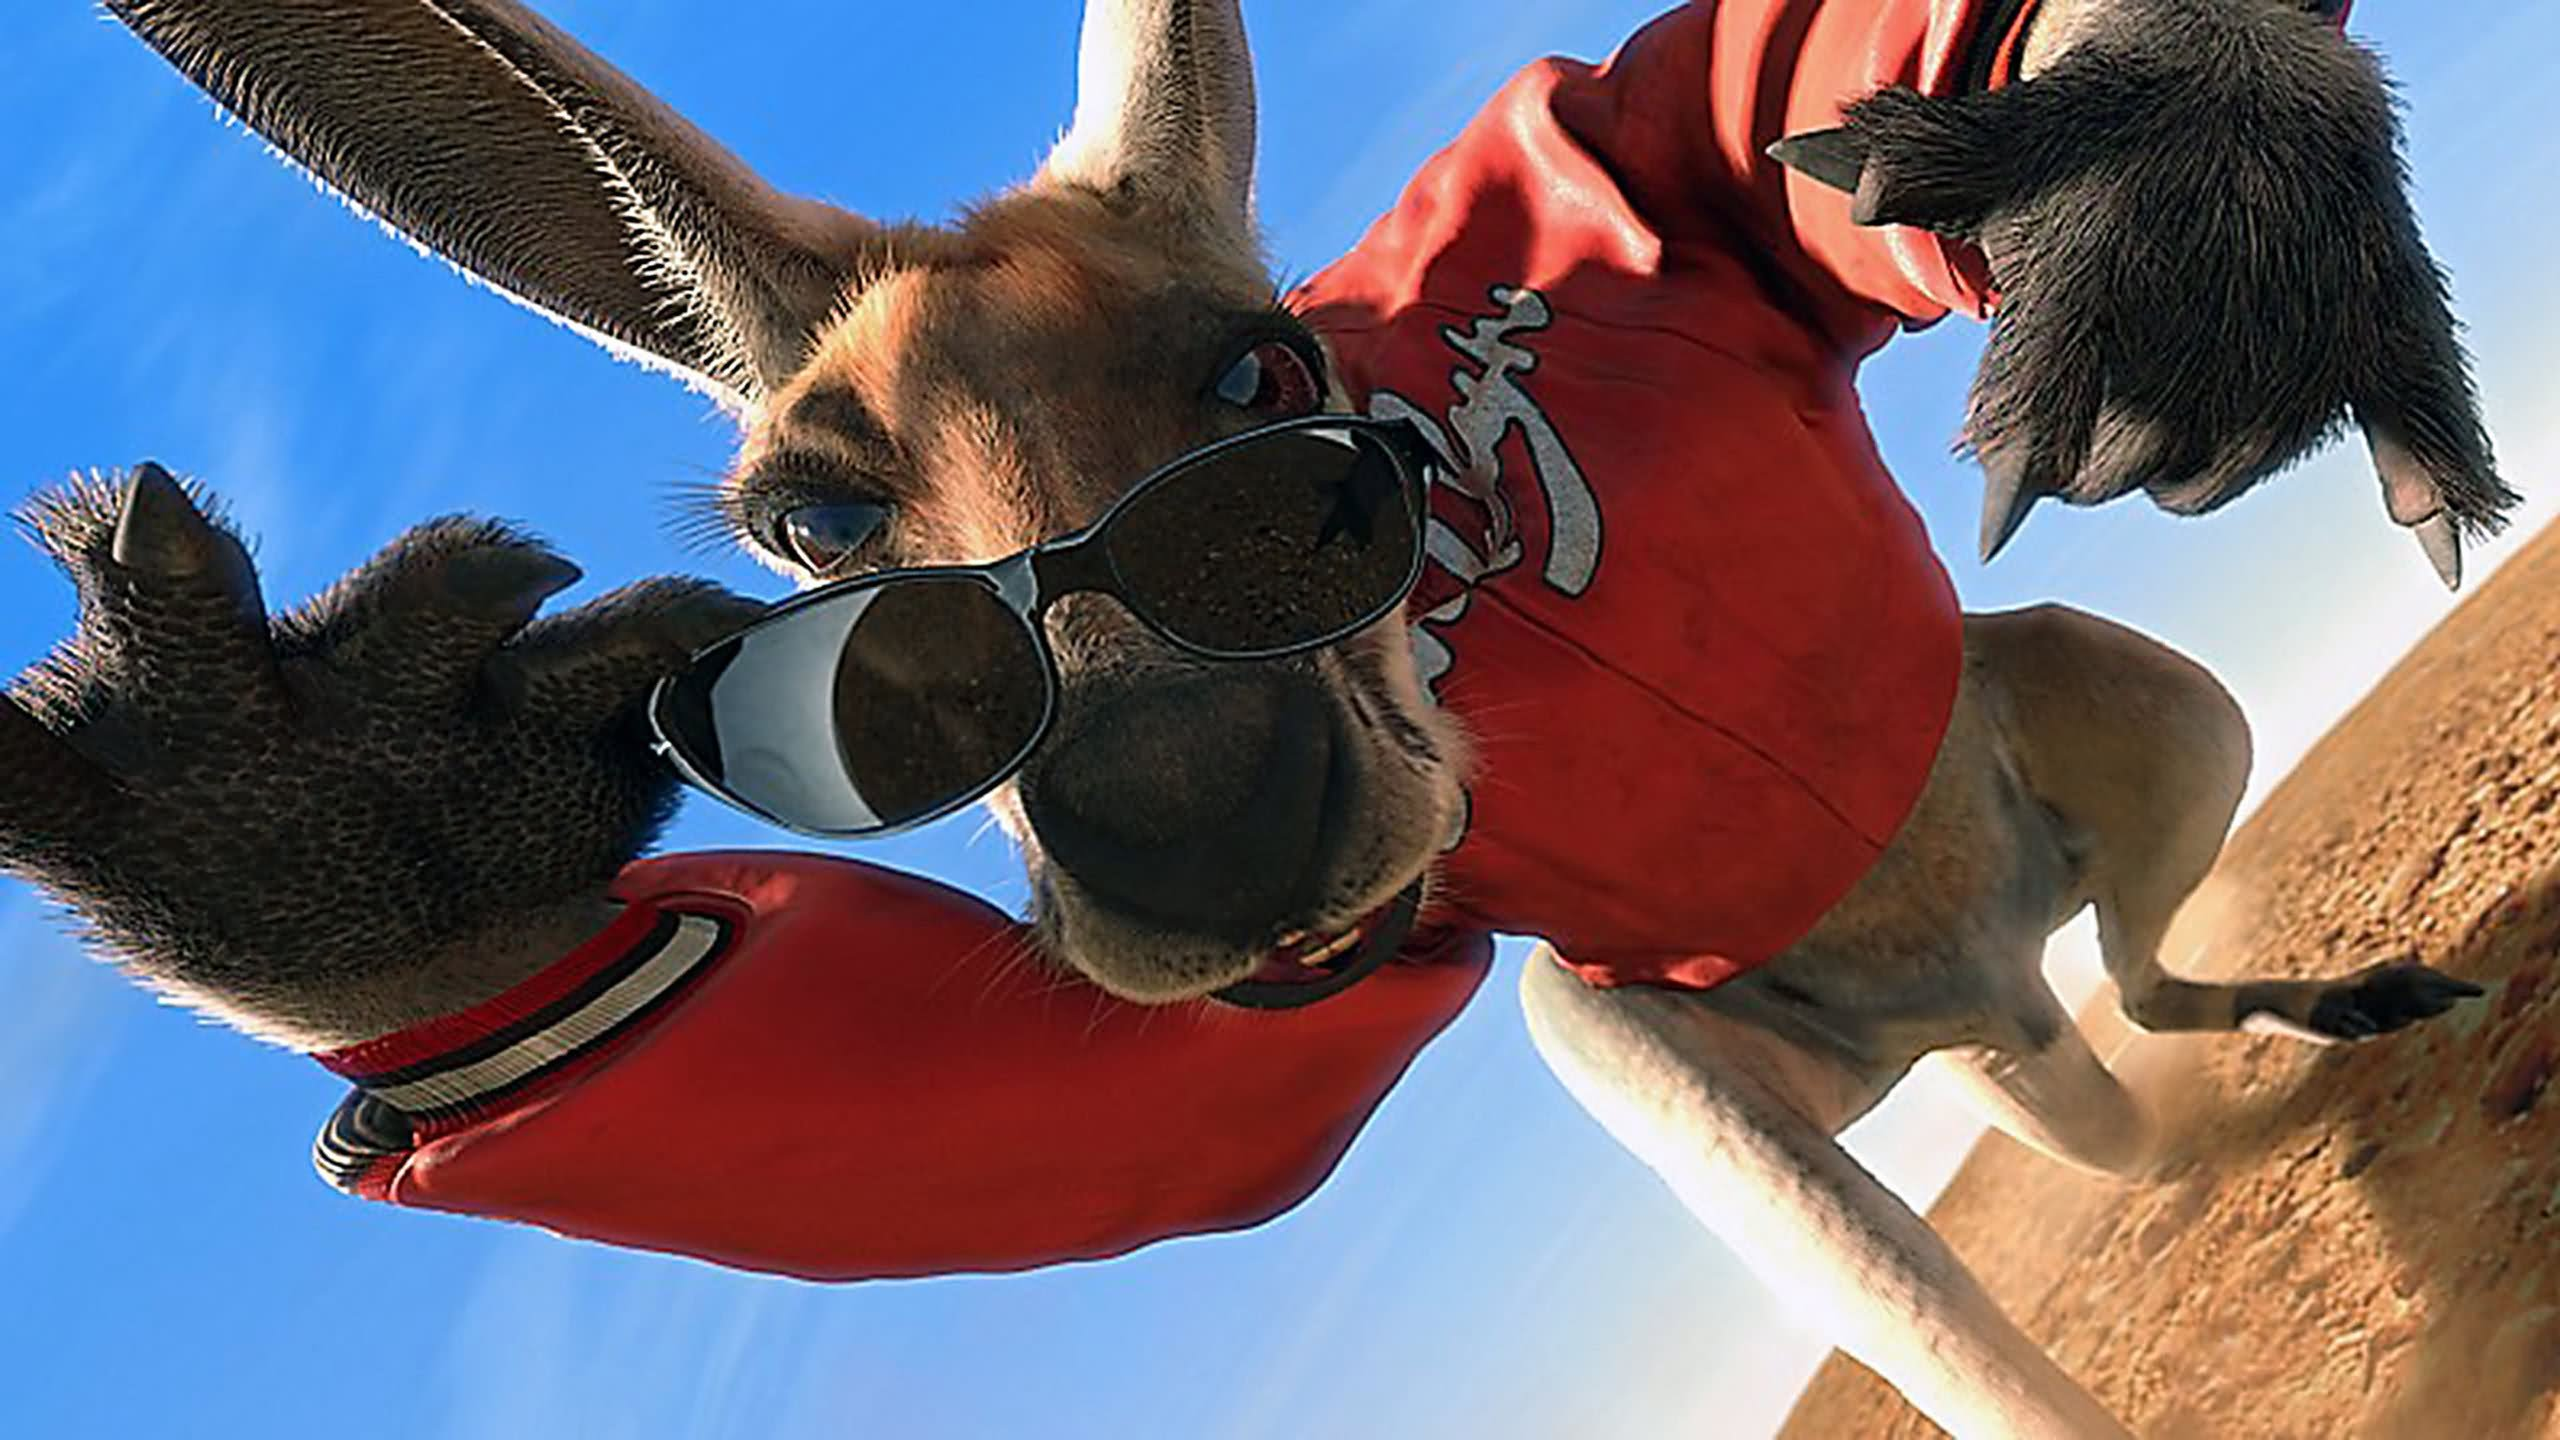 Cartoon Girl Hd Wallpaper 15 Very Funny Kangaroo Pictures